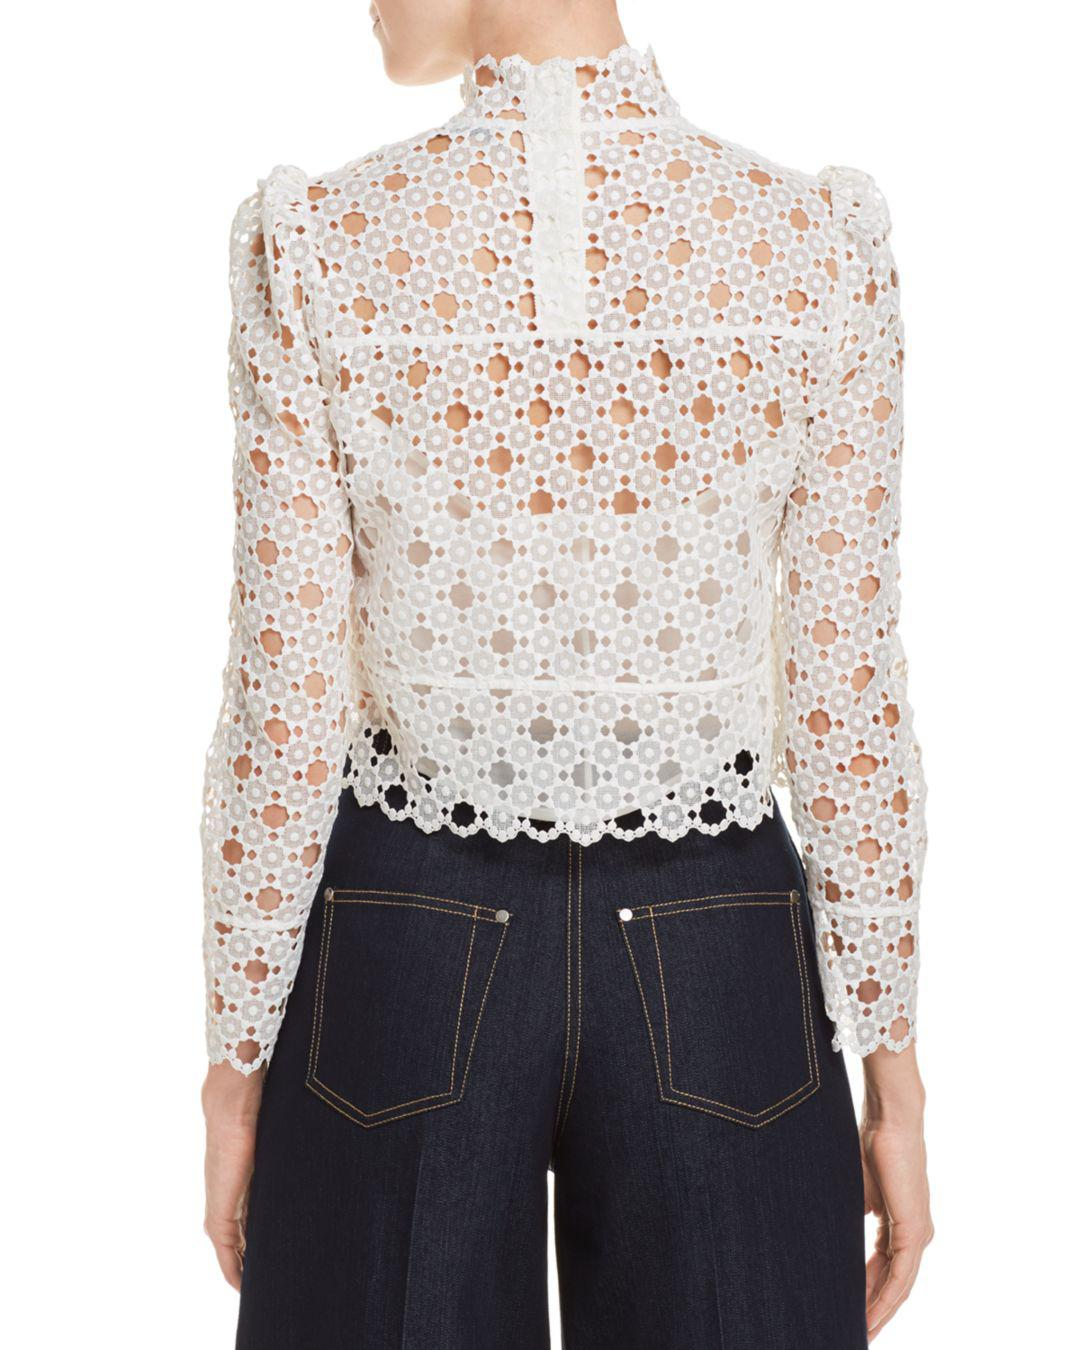 9041ec837e0f5f Sandro Coralisse Eyelet-lace Top in White - Lyst